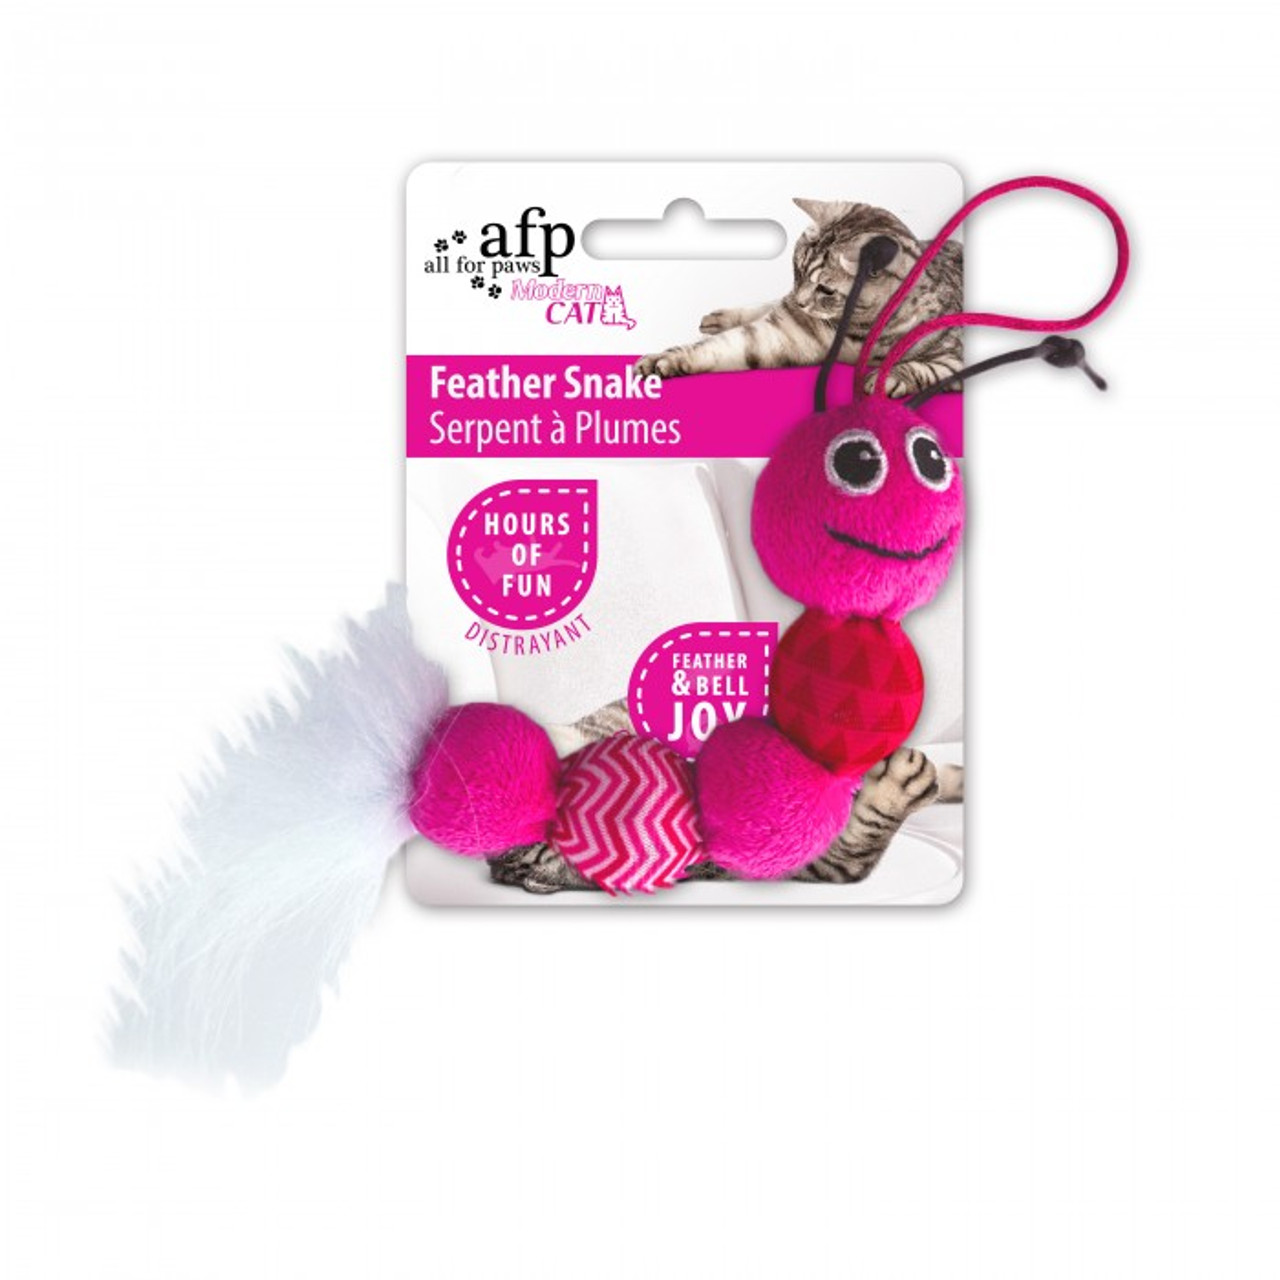 All for Paws Modern Cat Feather Snake Toy - Pink